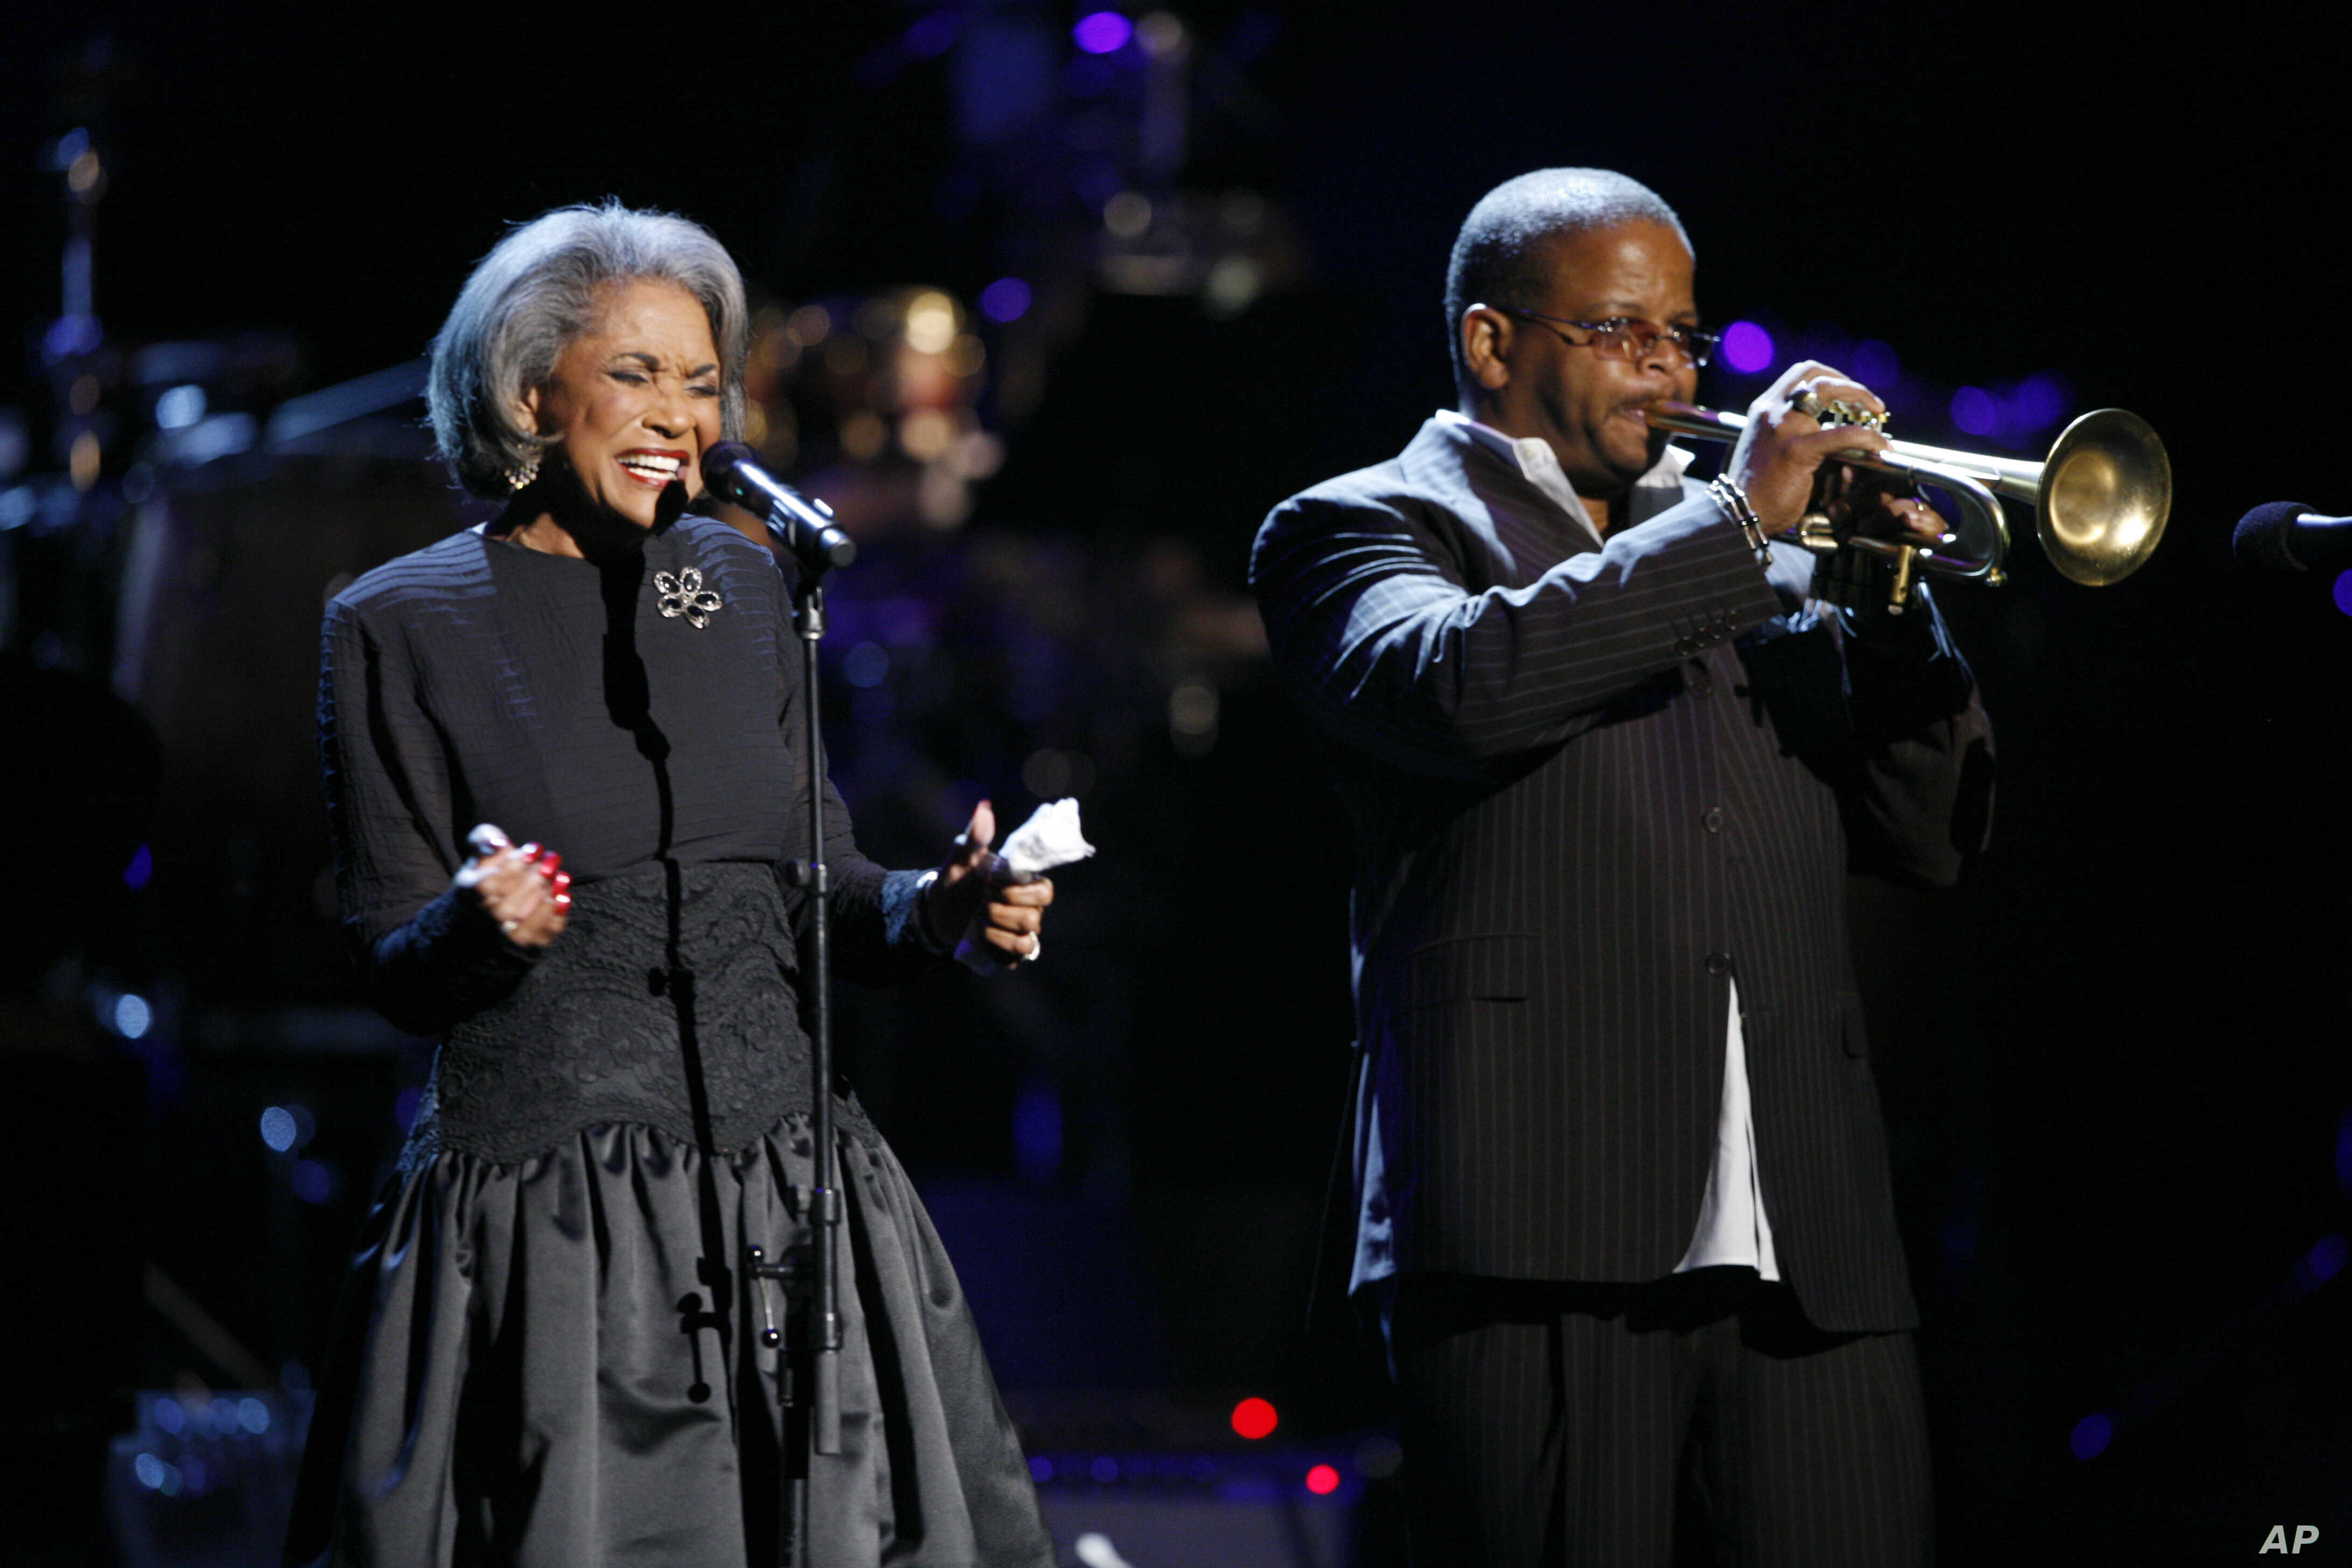 FILE - In this Oct. 28, 2007 file photo, Nancy Wilson, left, and Terence Blanchard, right, perform during an all-star tribute concert for Herbie Hancock, in Los Angeles.